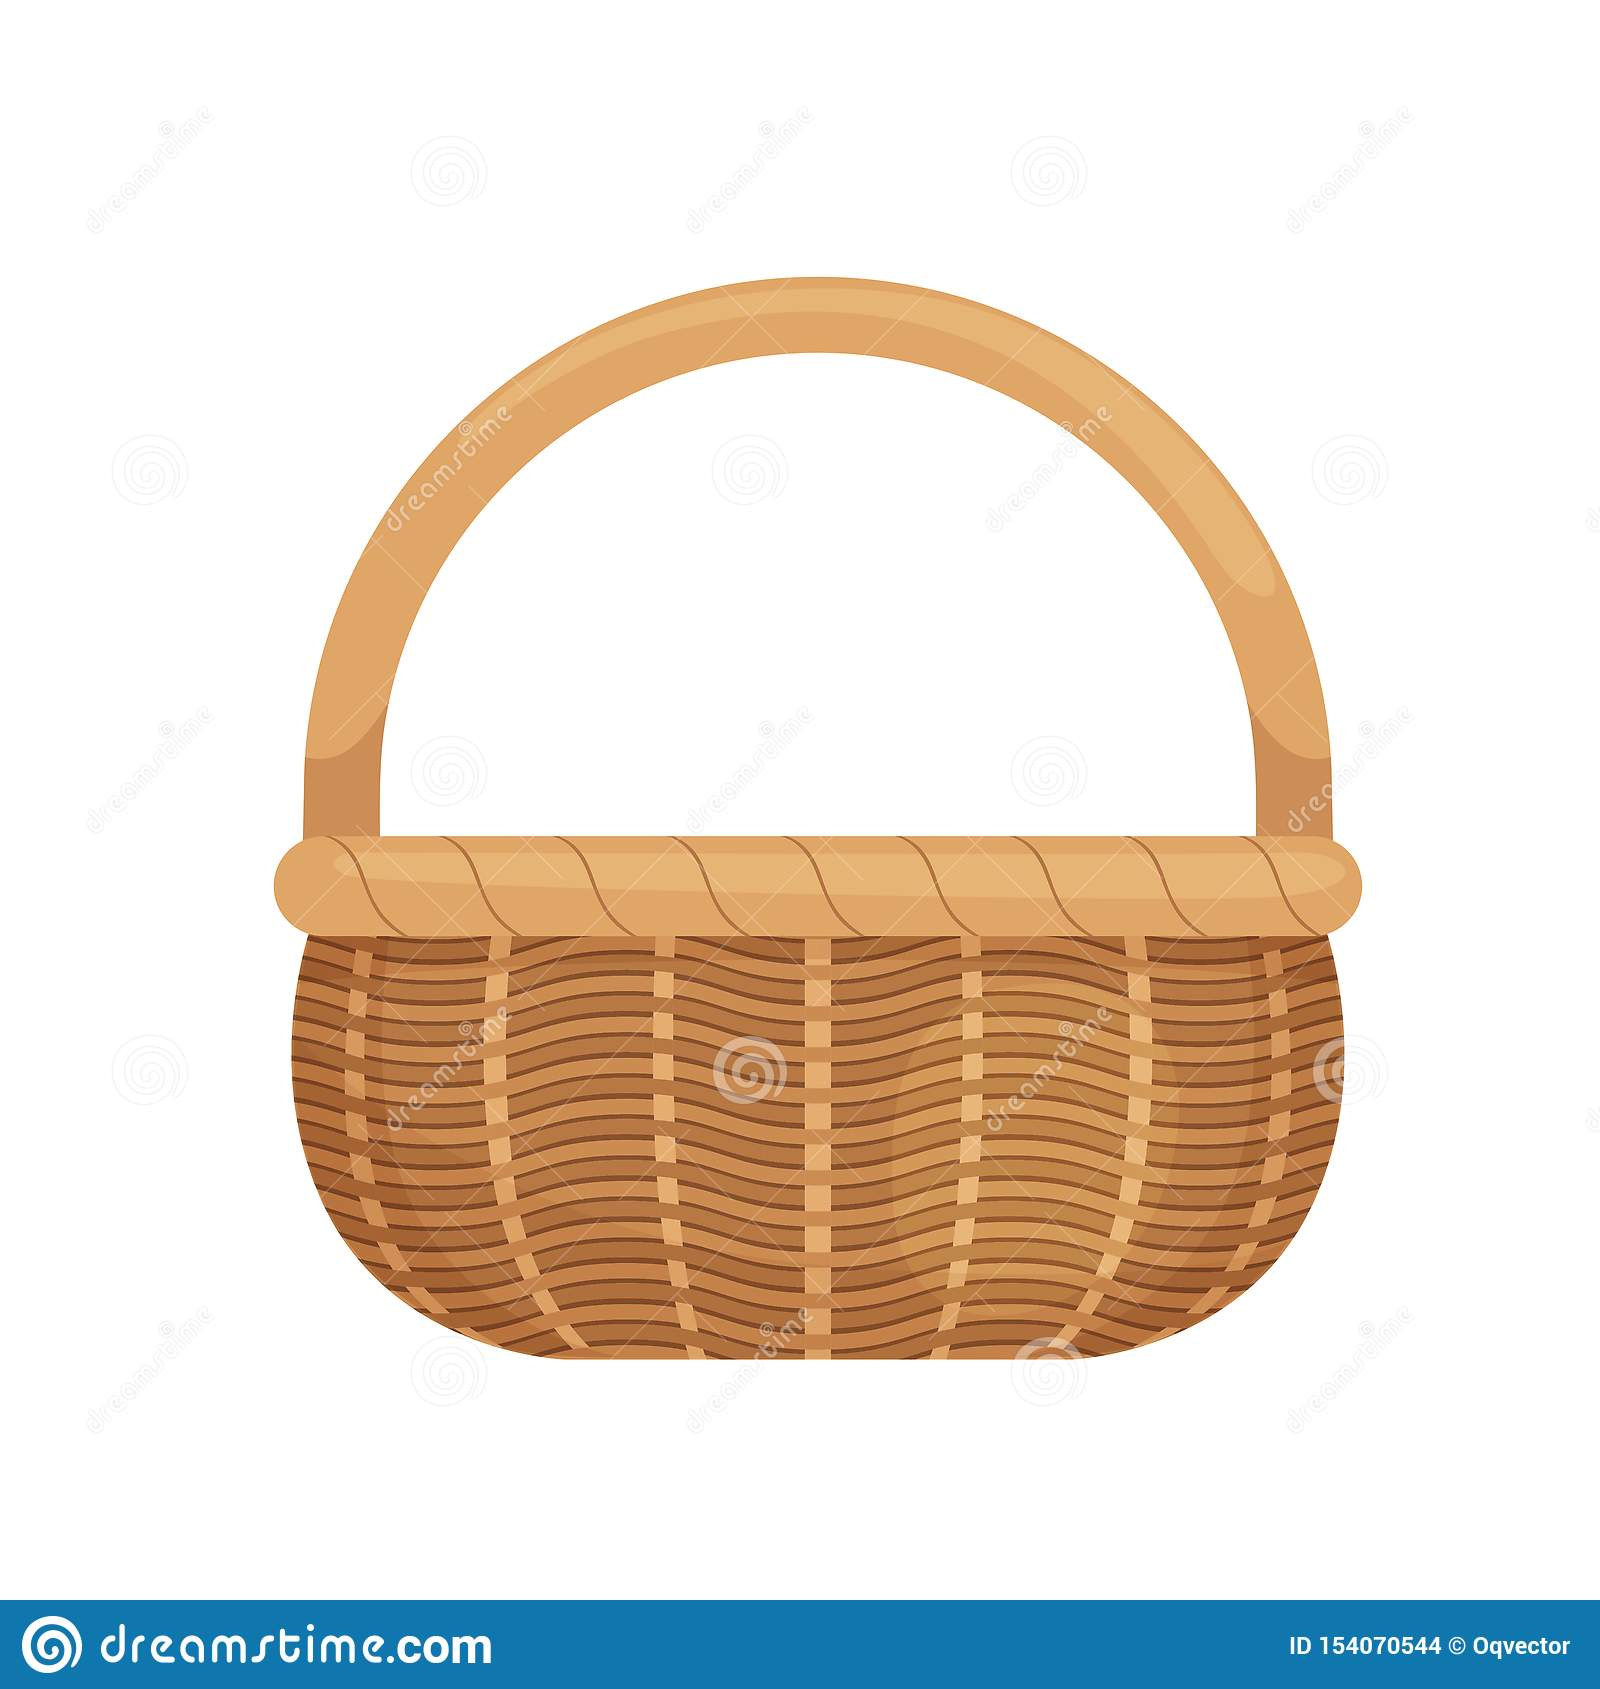 Wicker Basket With Picnic Handle Cartoon Style Eco Friendly Isolated On White Background Stock Vector Illustration Of Patchwork Interior 154070544